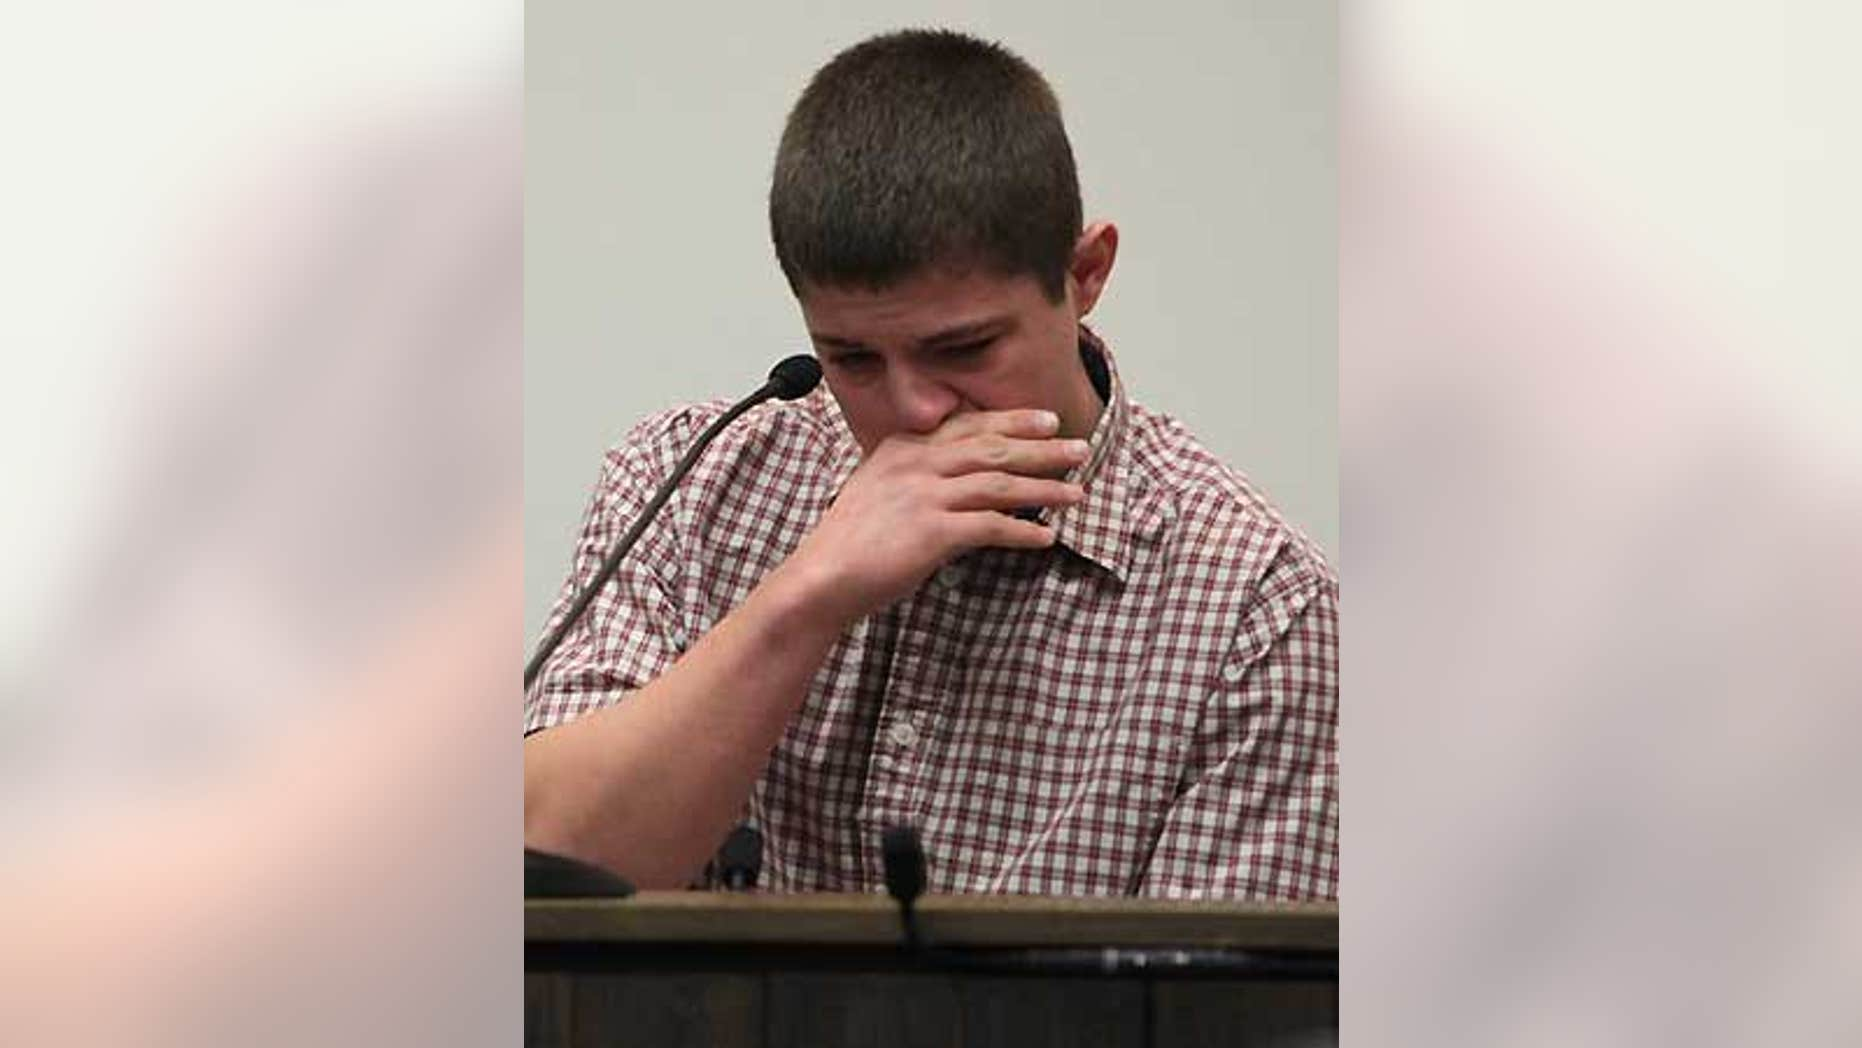 Feb. 12: Brandon Simkins cries at the Butler County Courthouse in Allison, Iowa as he recalls Mark Becker pulling a gun on him.